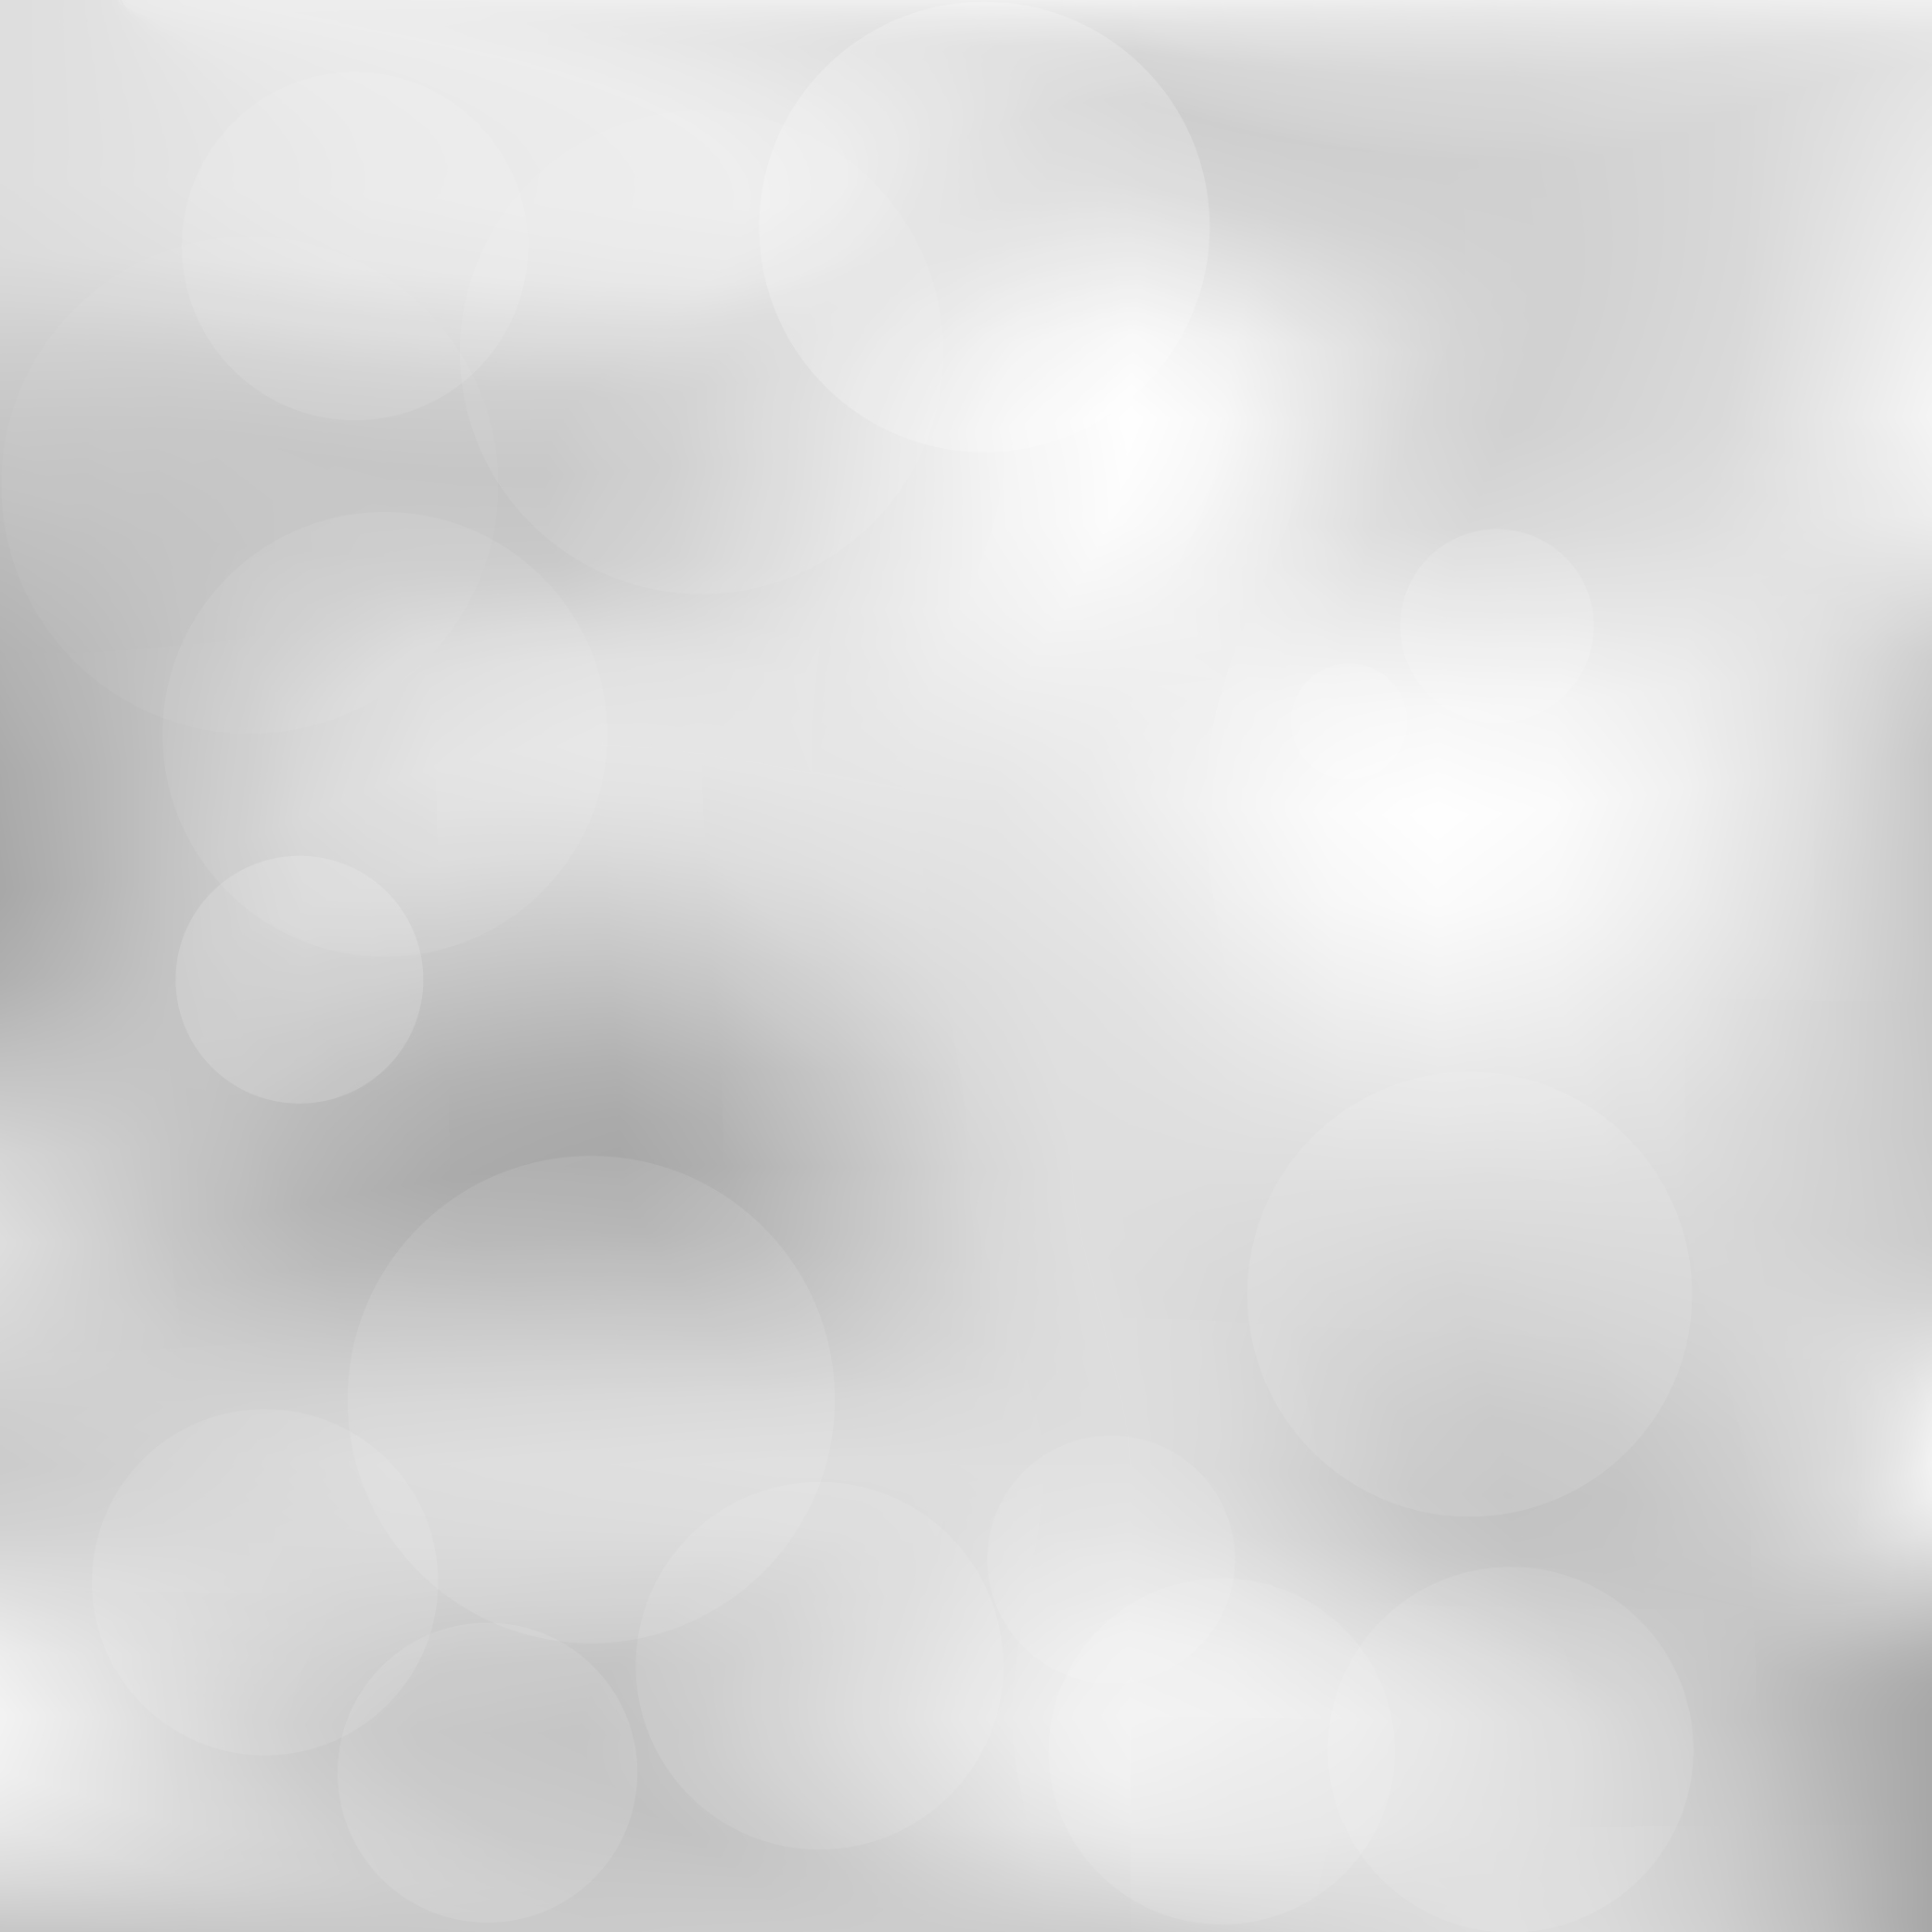 Blurred silver effect holographic gradient background example image 5